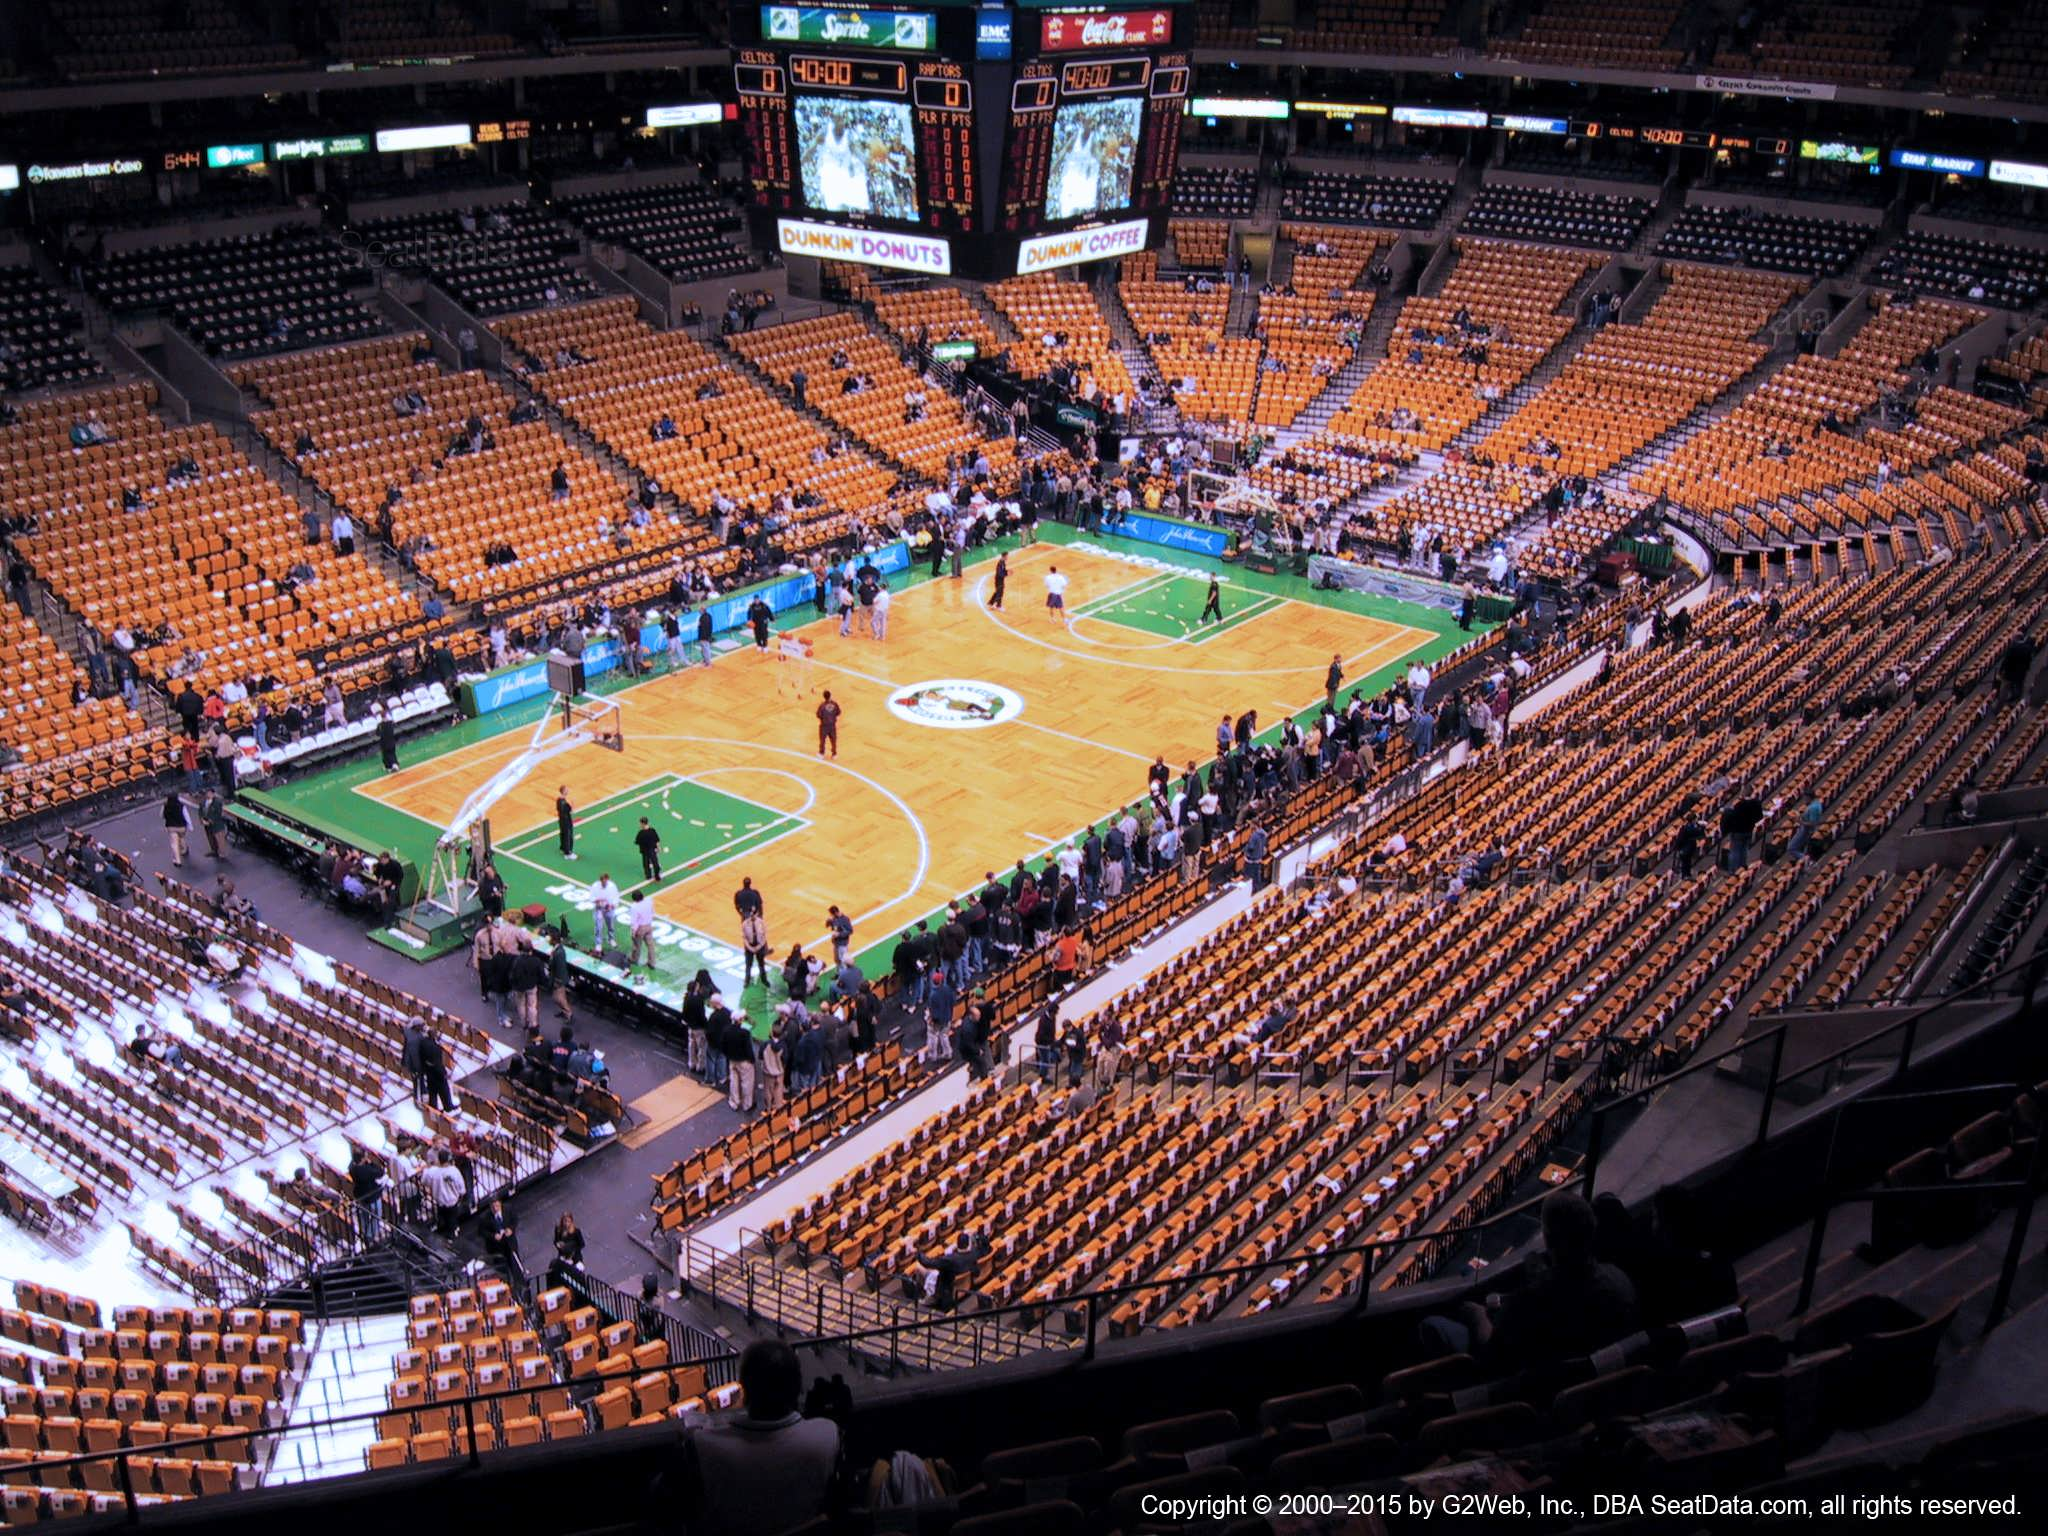 Td Garden Section 320 Boston Celtics